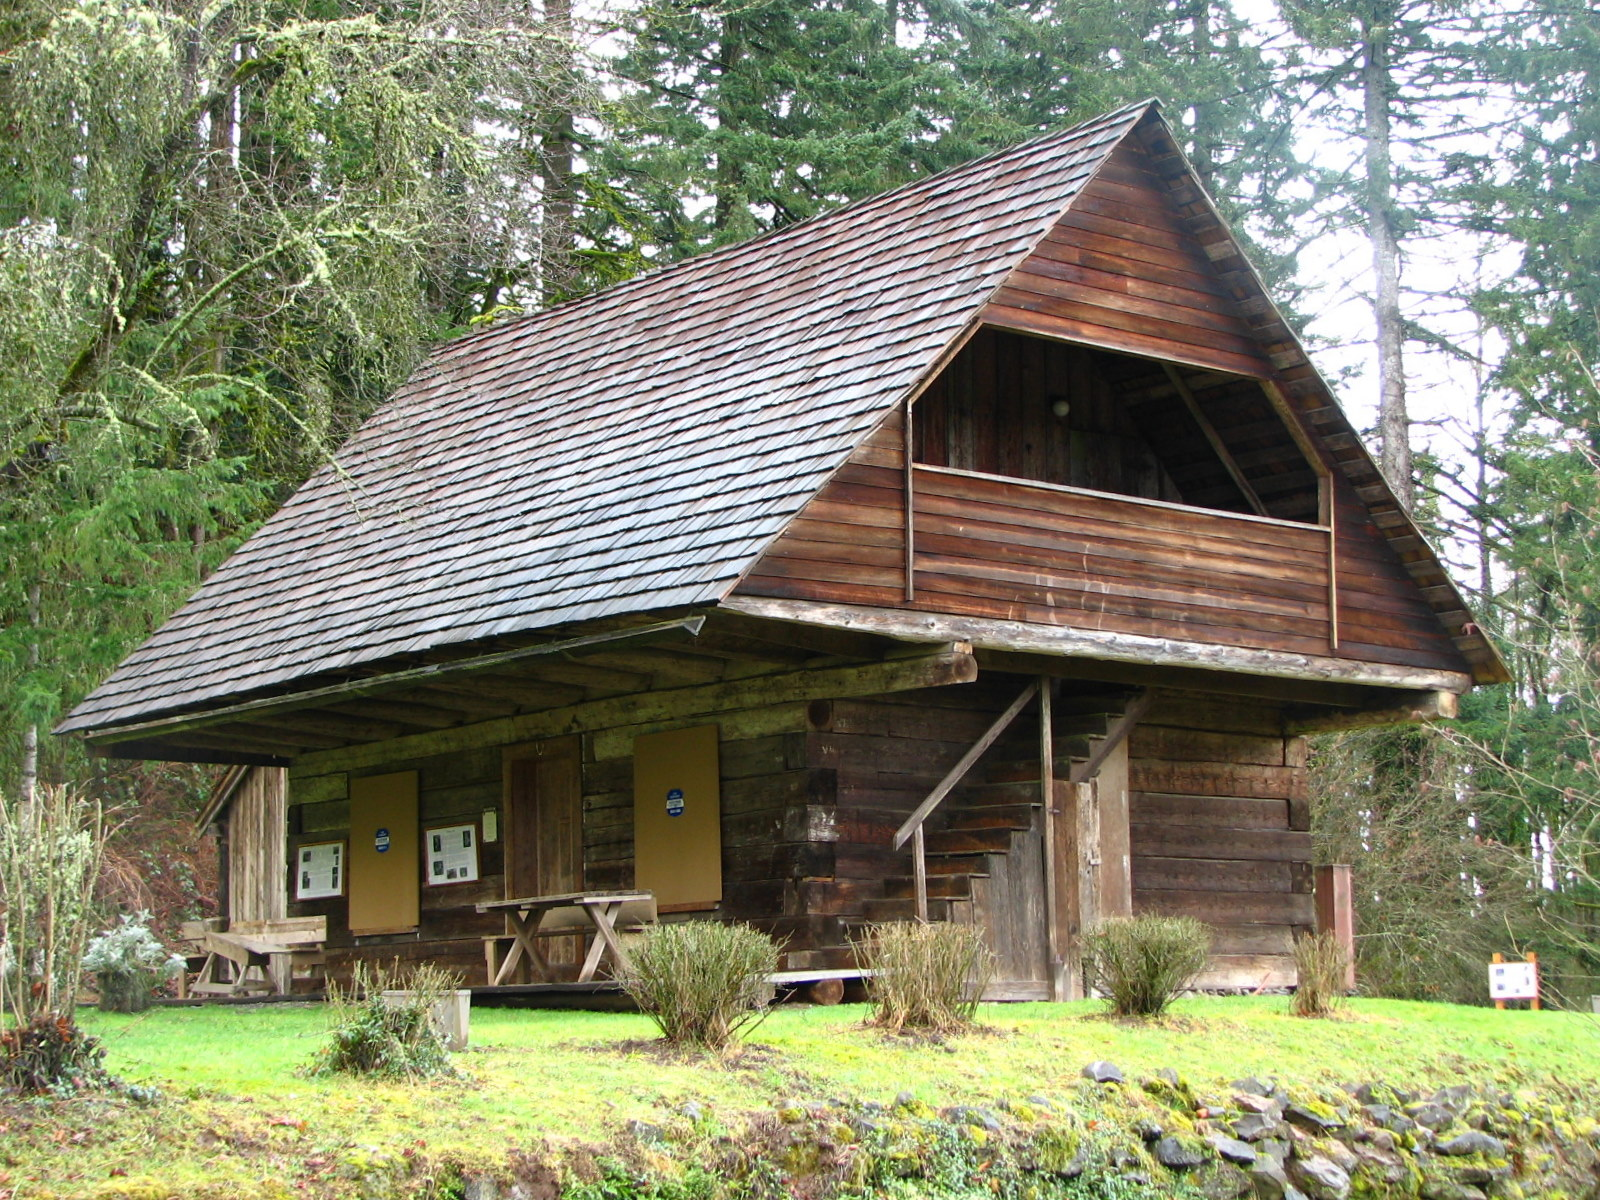 1000 images about cool log cabins cottages on pinterest for Chalet log homes